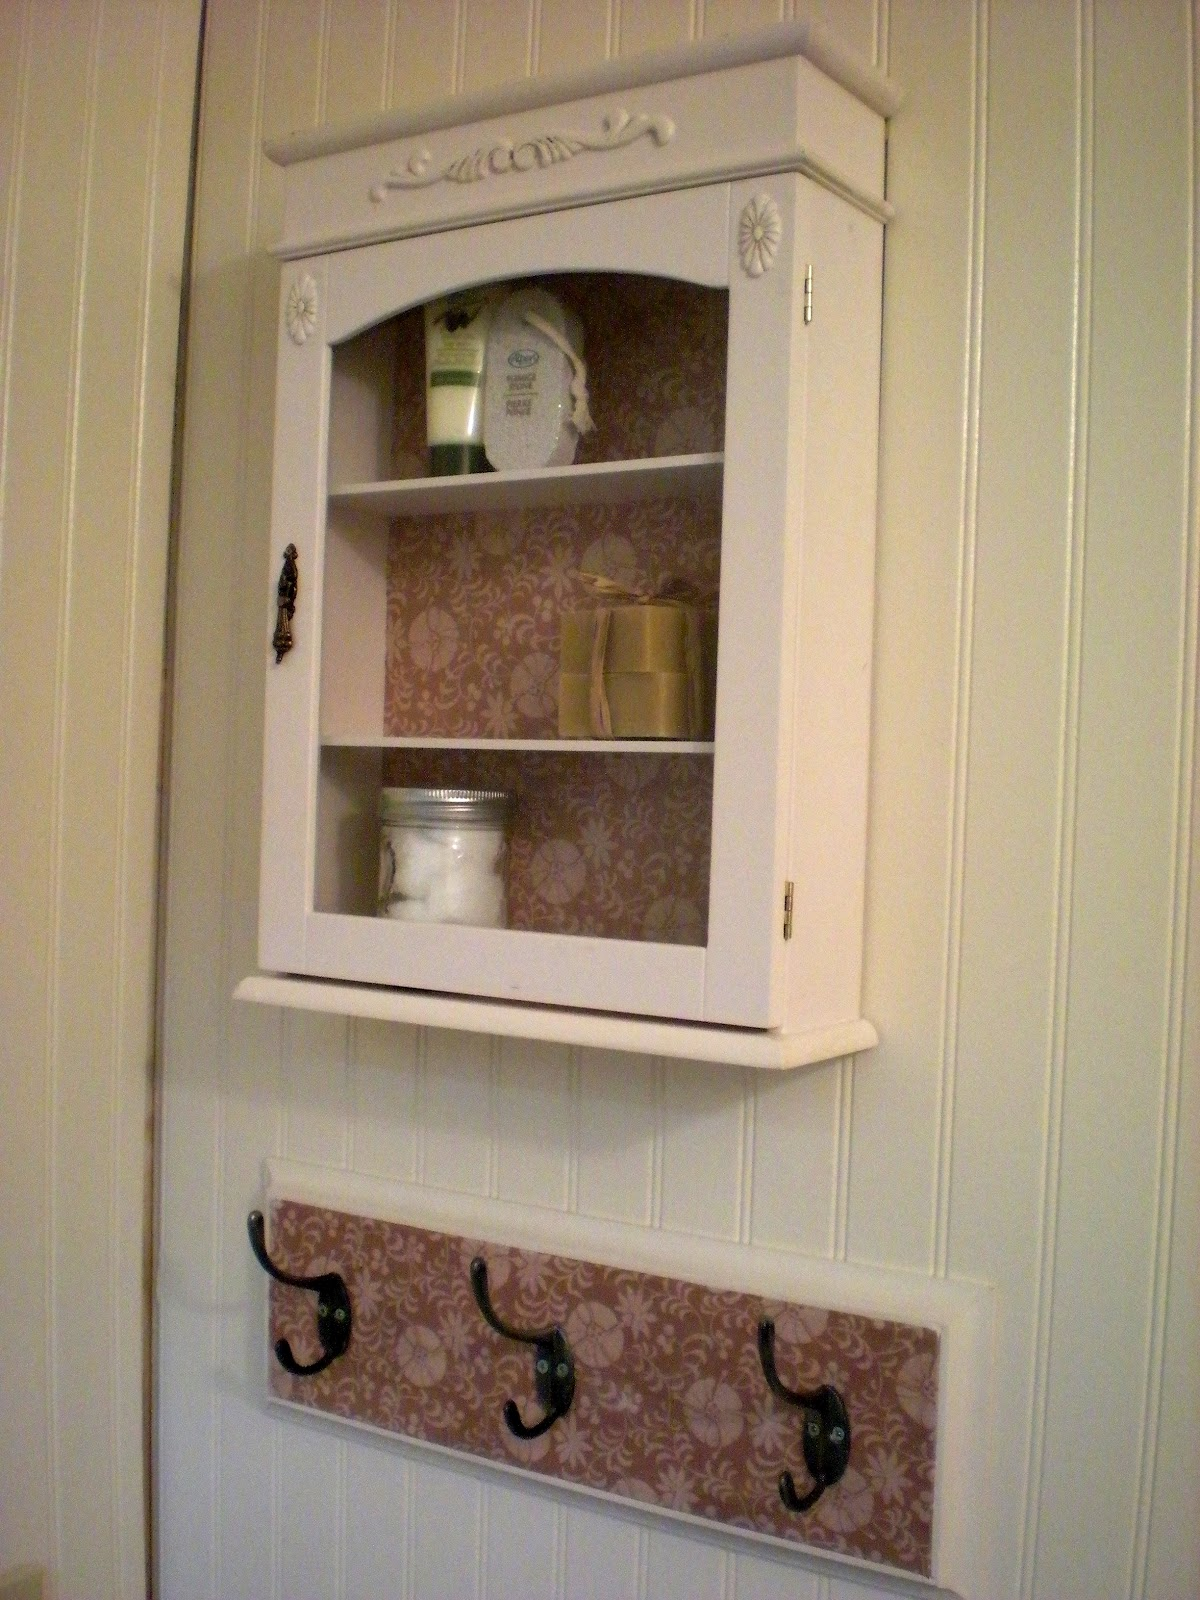 Designdreams by anne a vintage look for the bathroom for Looking for bathroom accessories